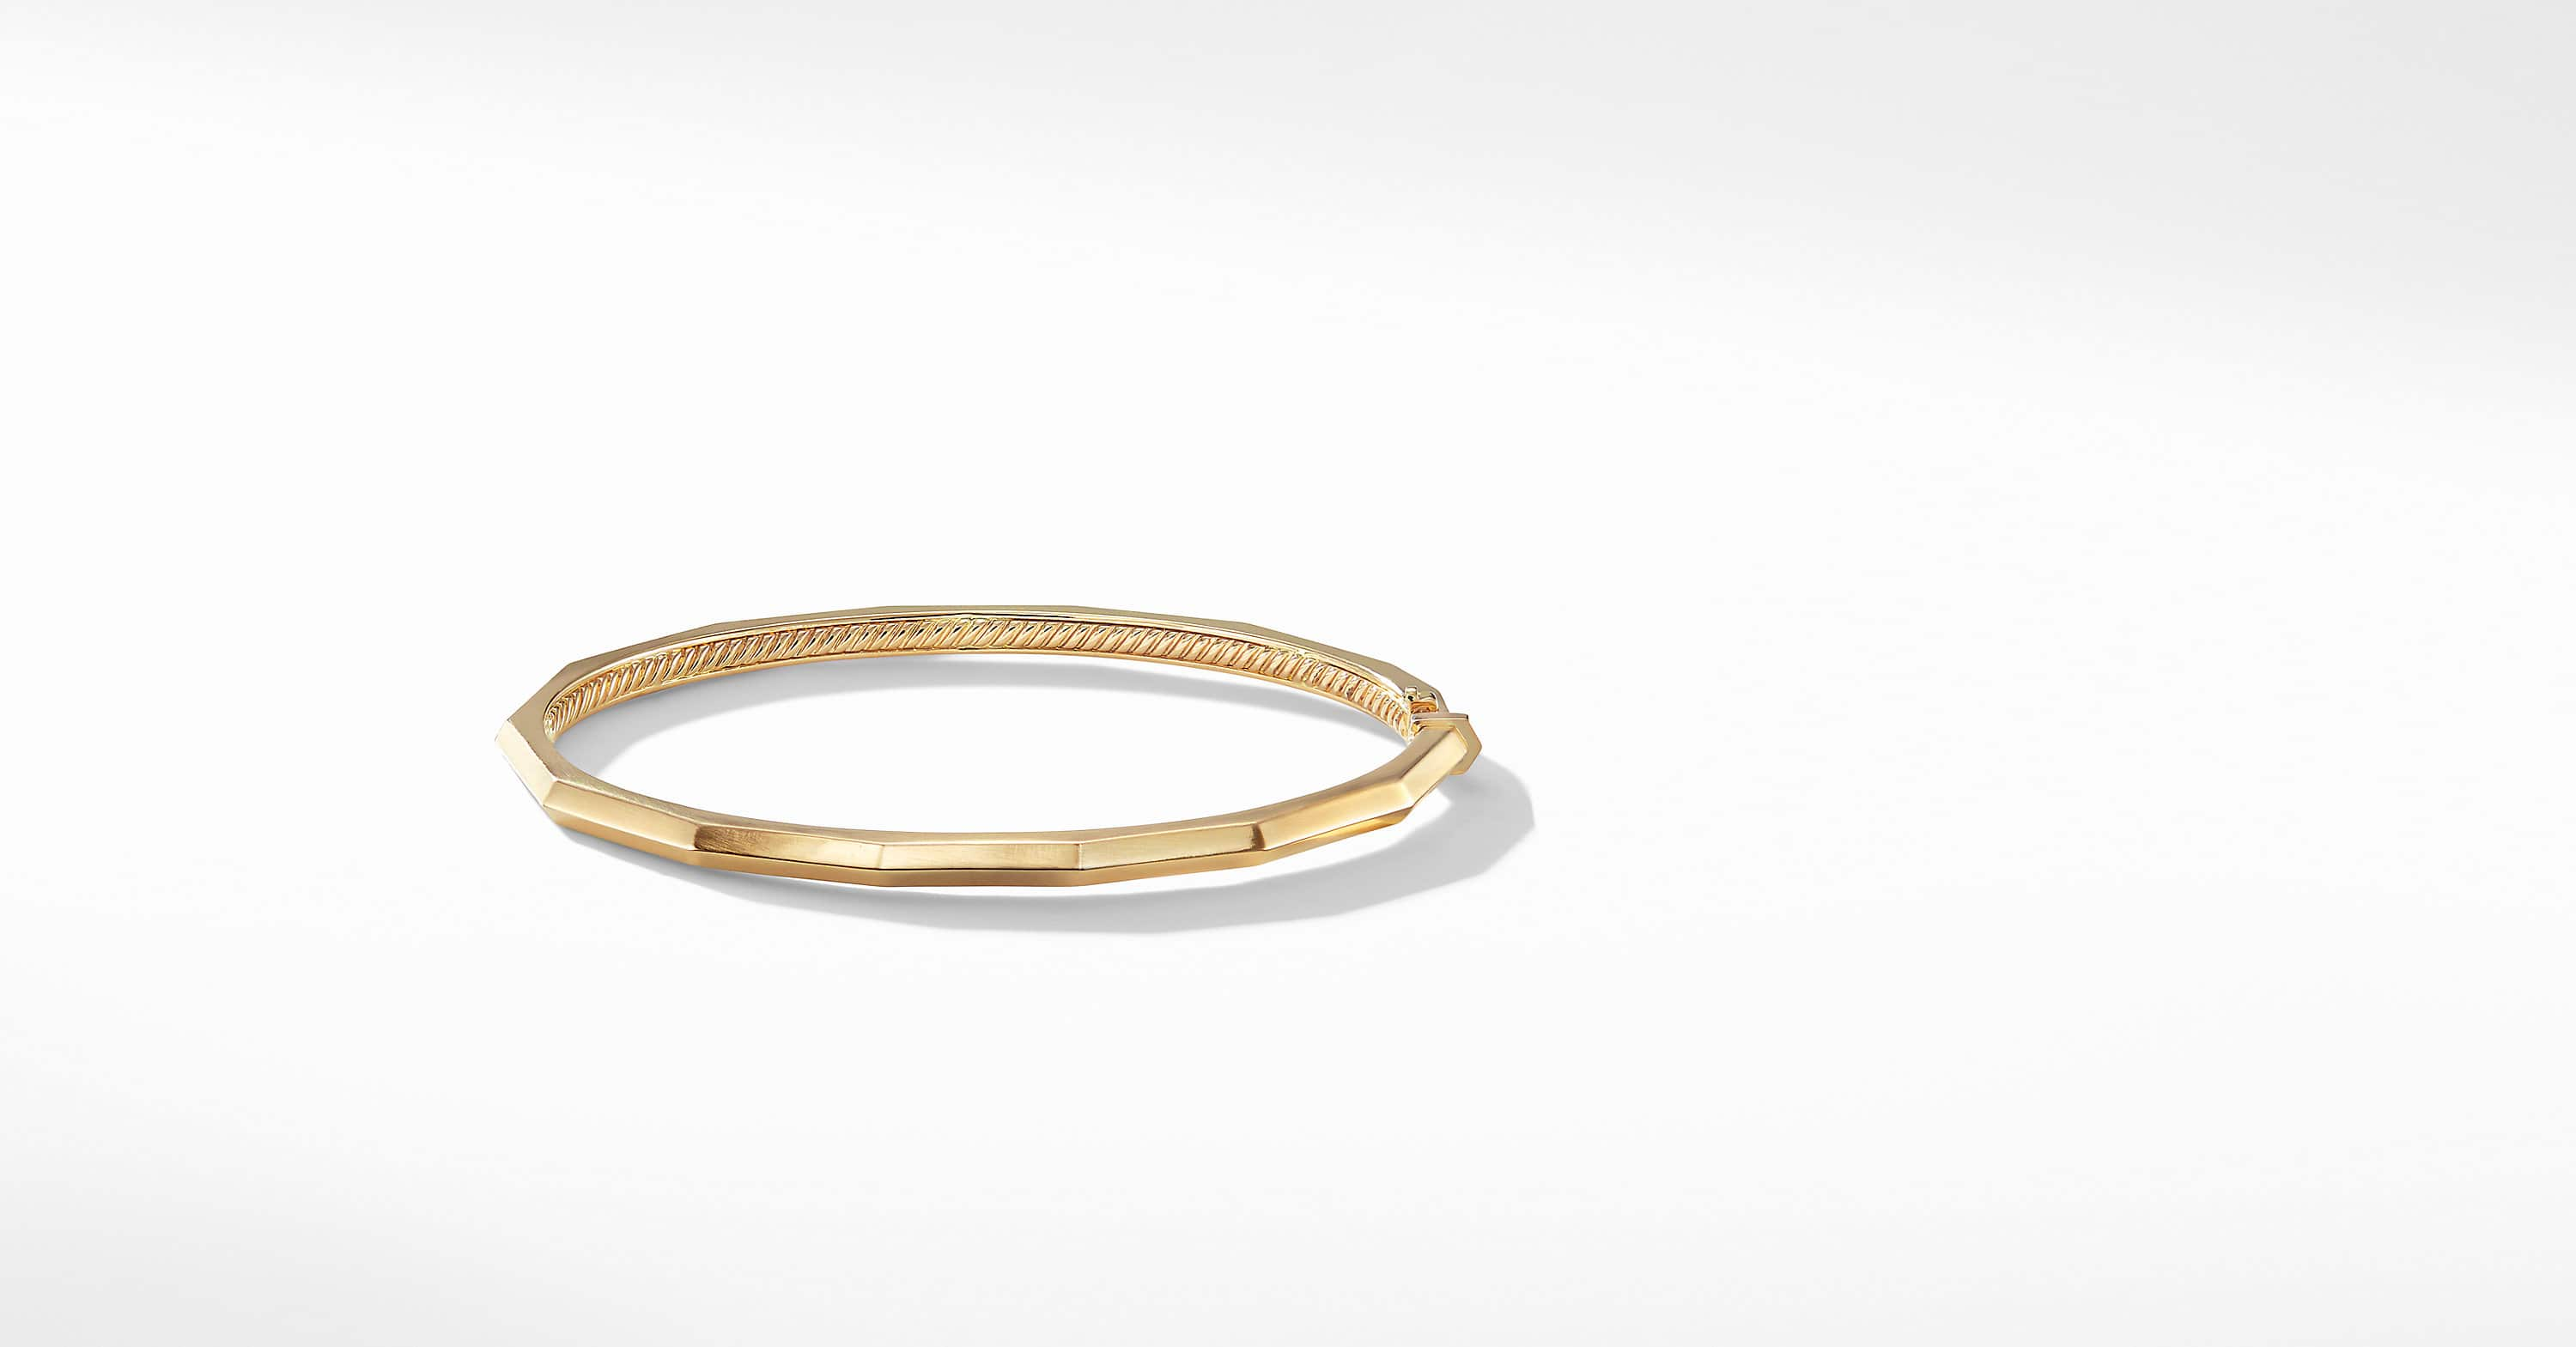 Bracelet Stax un rang facetté en or 18K, 3 mm